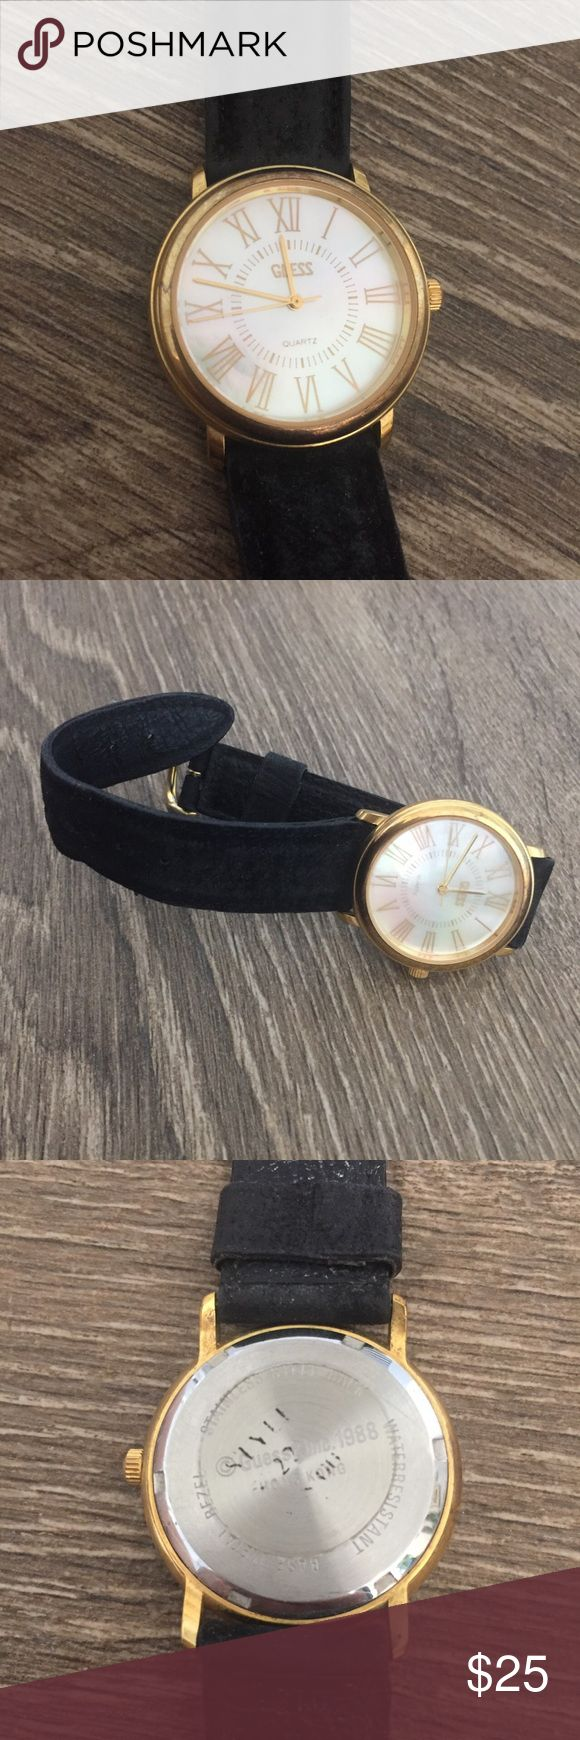 Vintage Guess Watch Iridescent Pearl 1988 Vintage Guess Watch. Marked 1988 on the back. Iridescent face almost like pearls. Gold trim and numbers. Genuine leather black straps . Water resistant. Needs new battery #guess #watch Guess Accessories Watches